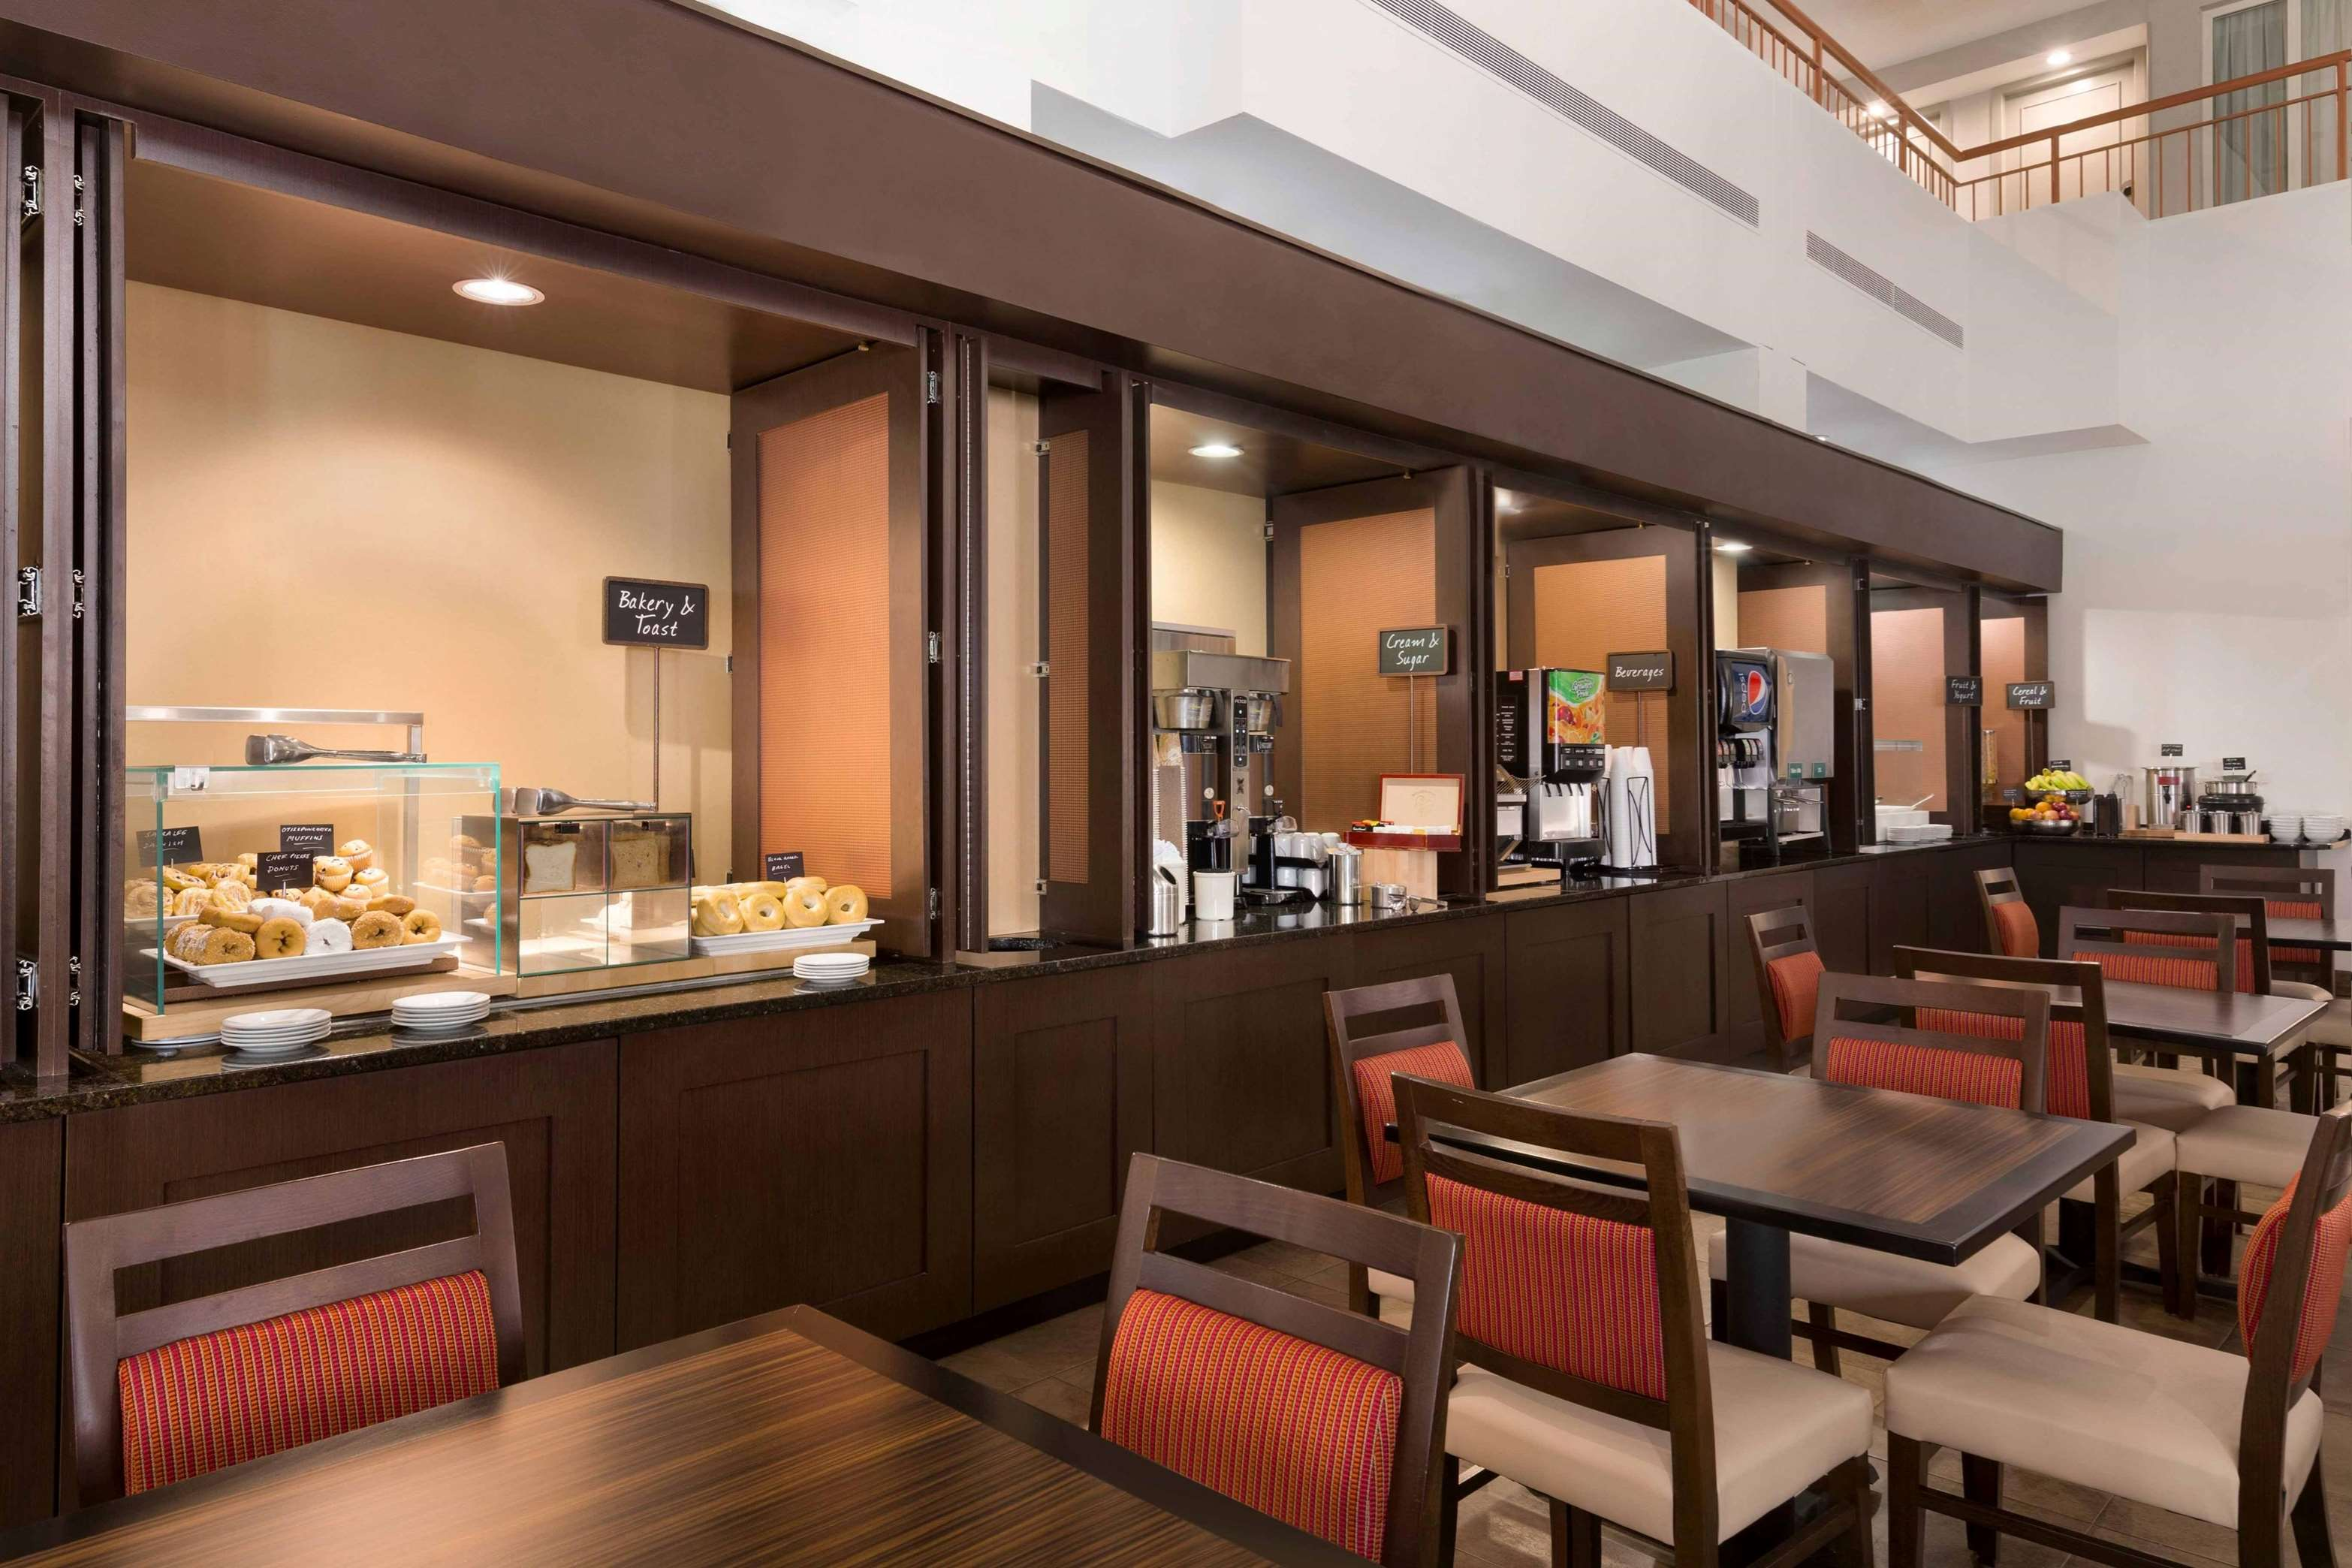 Embassy Suites by Hilton Baltimore at BWI Airport image 34